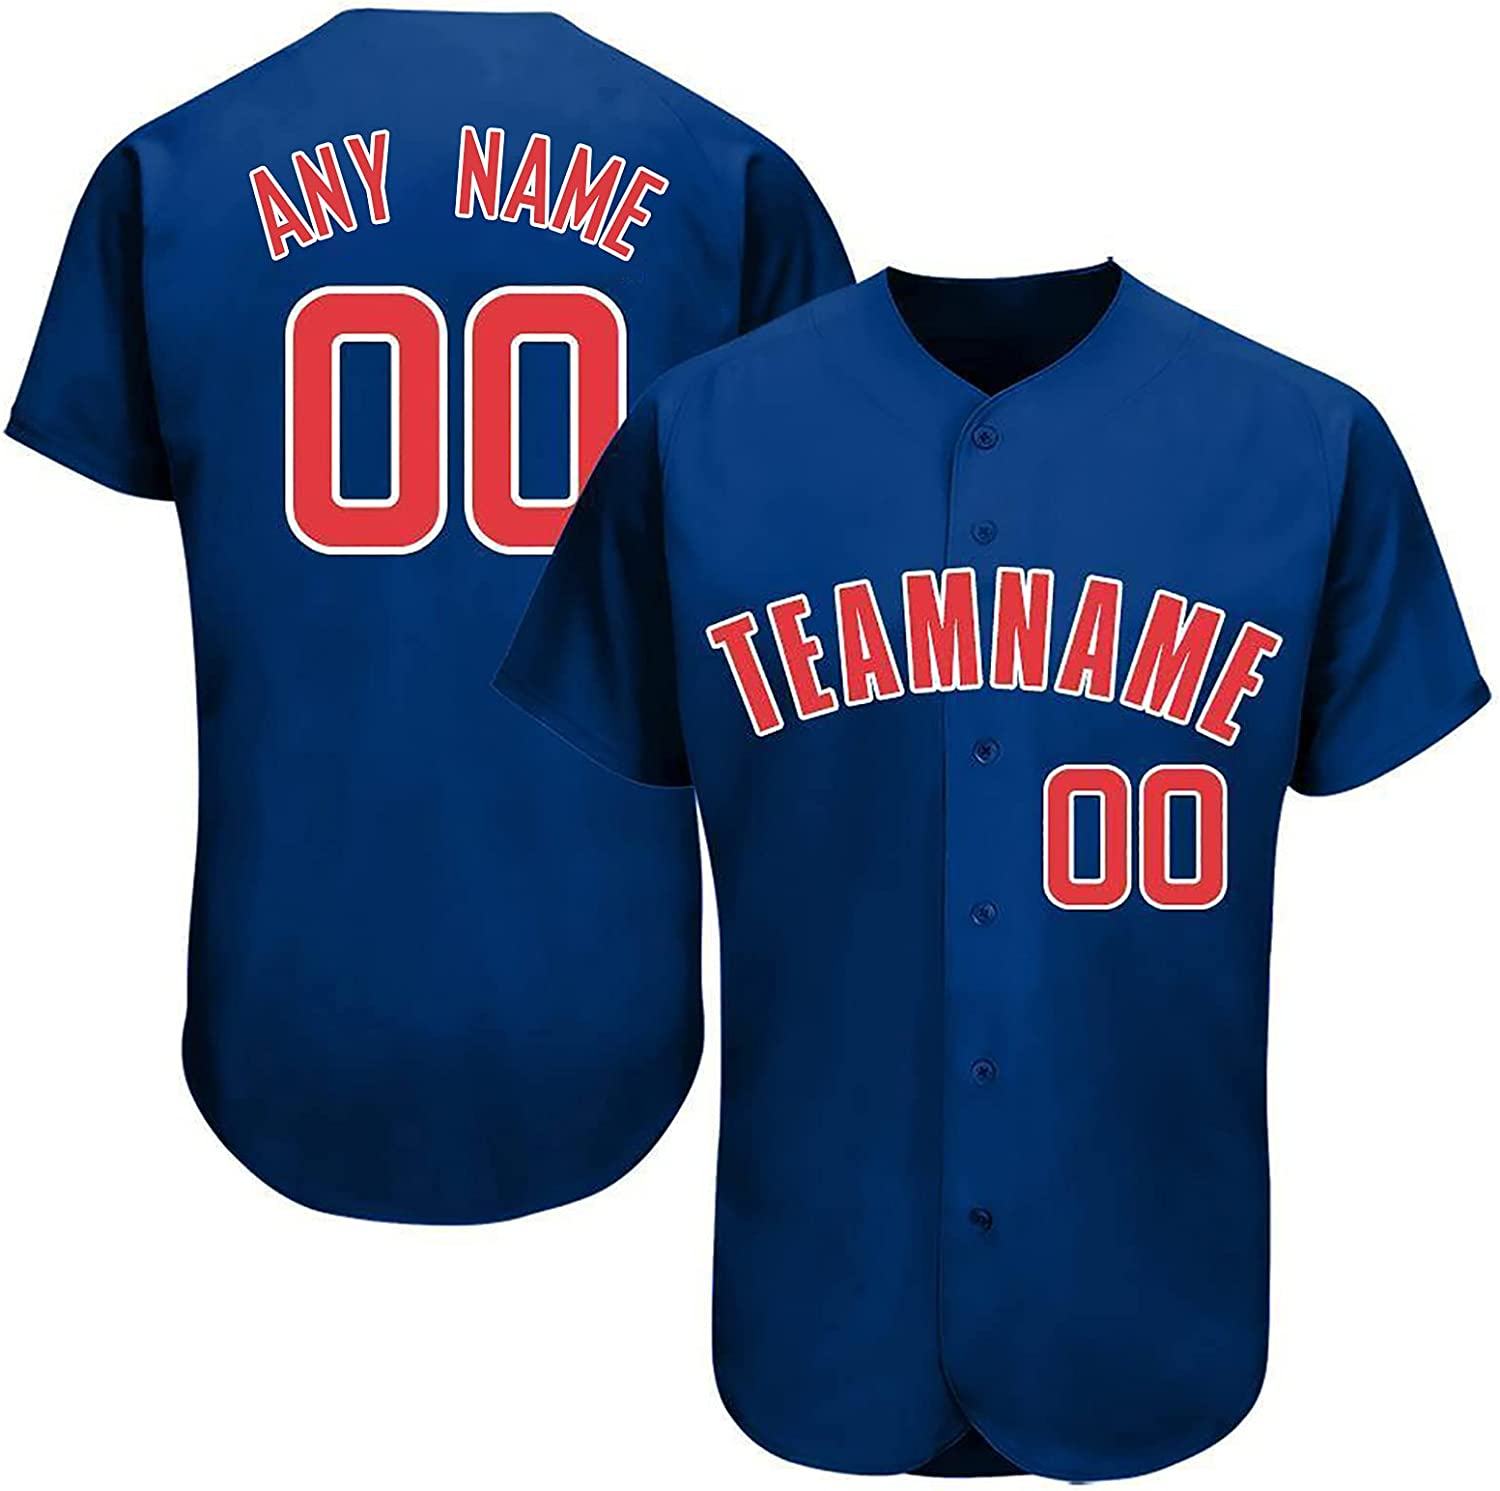 Custom Baseball Jersey Shirt Personalize Your Team Name & Number for Men Women Youth Fans Gift